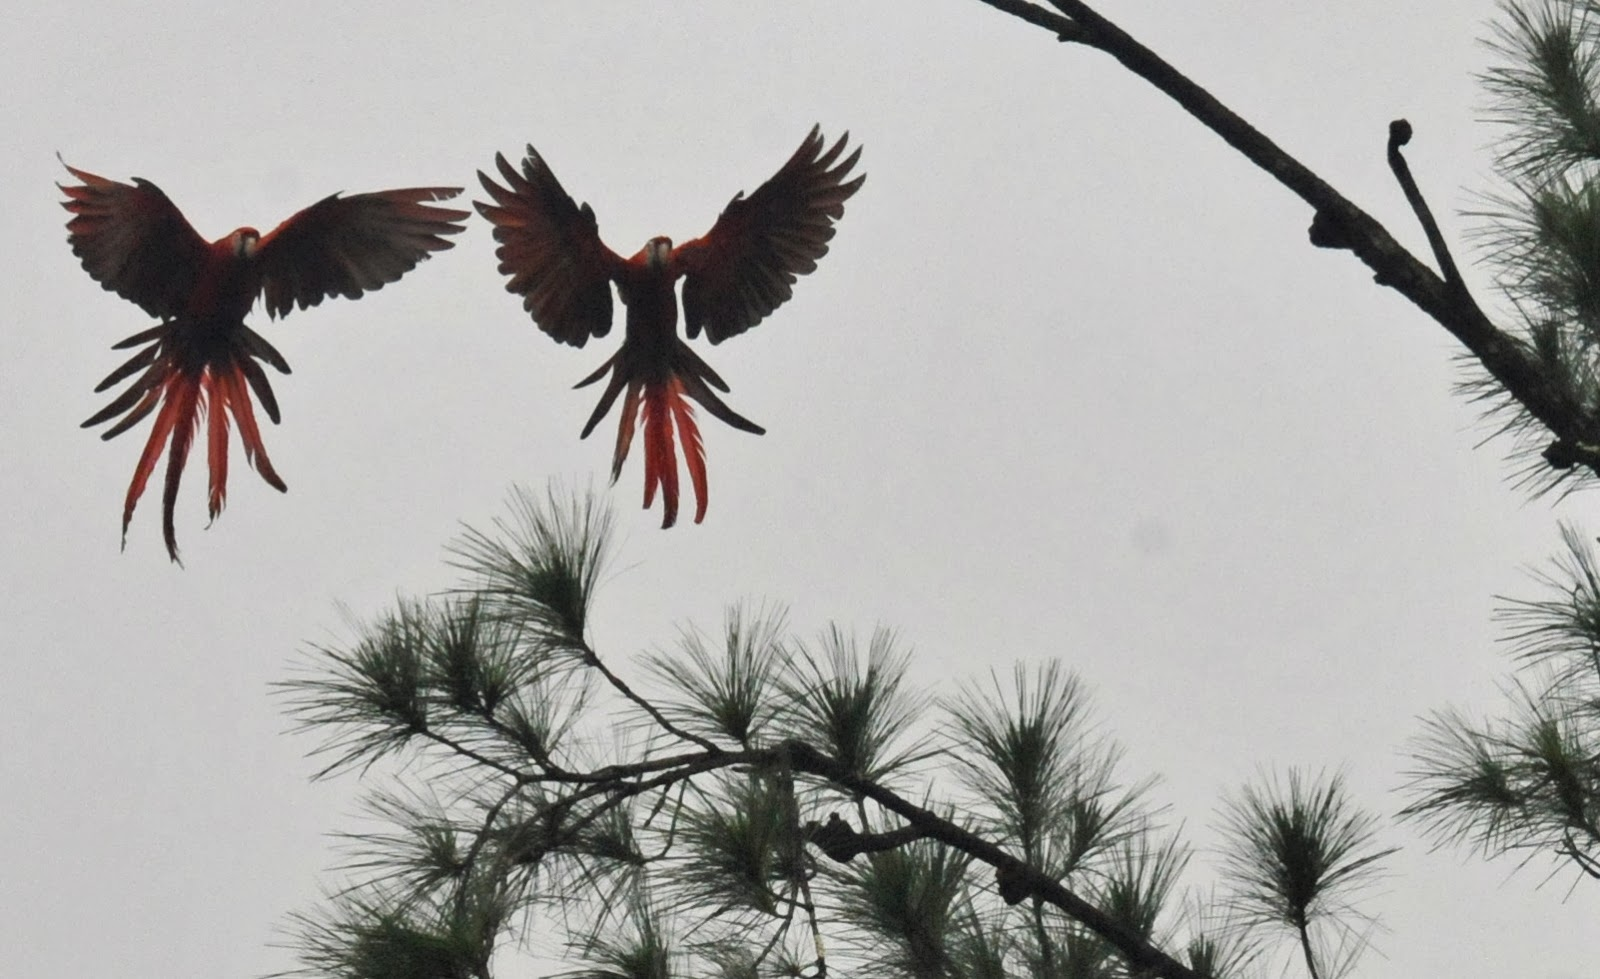 Macaw Pair Pine Trees.jpg